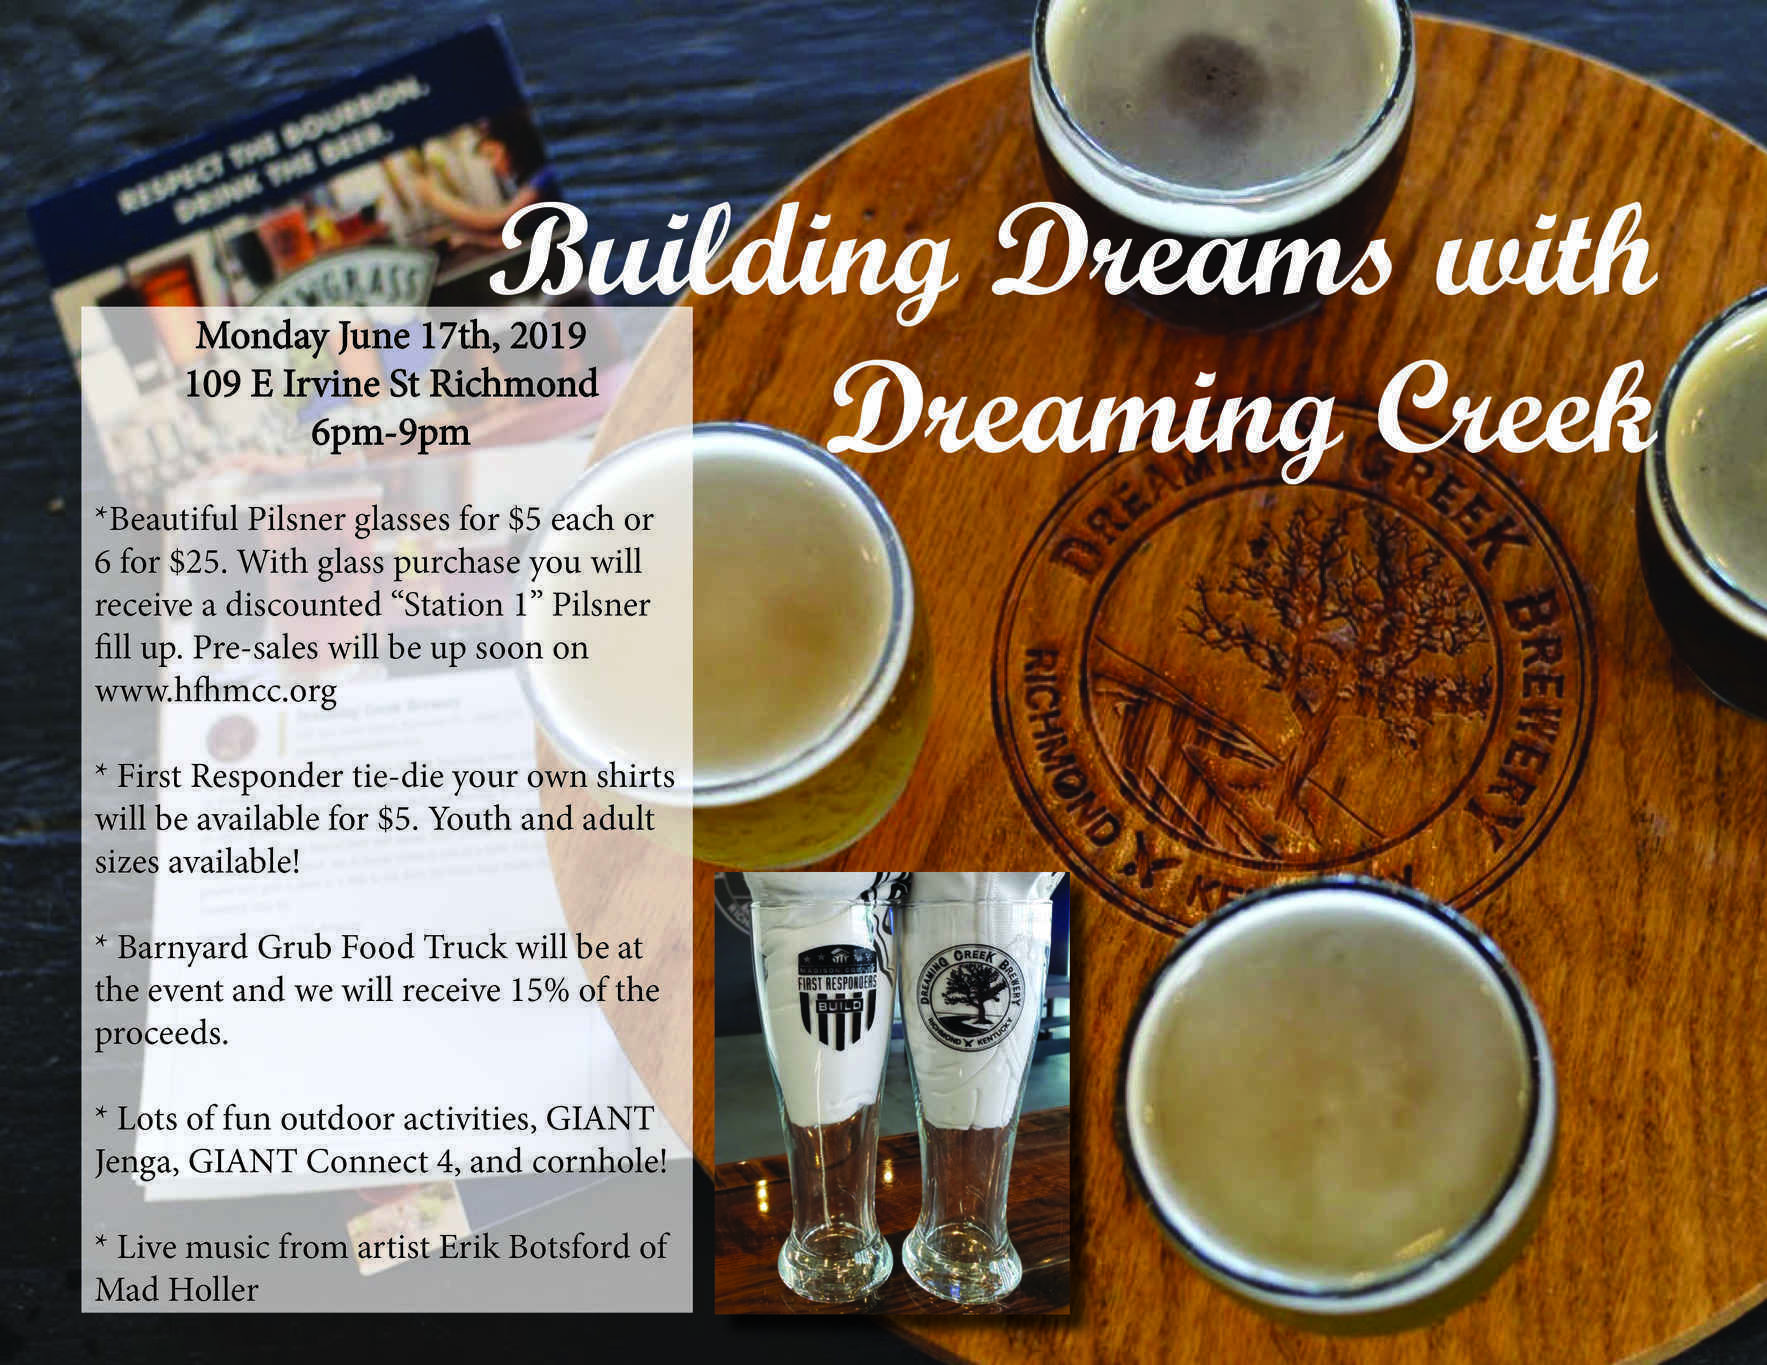 Building Dreams With Dreaming Creek  image